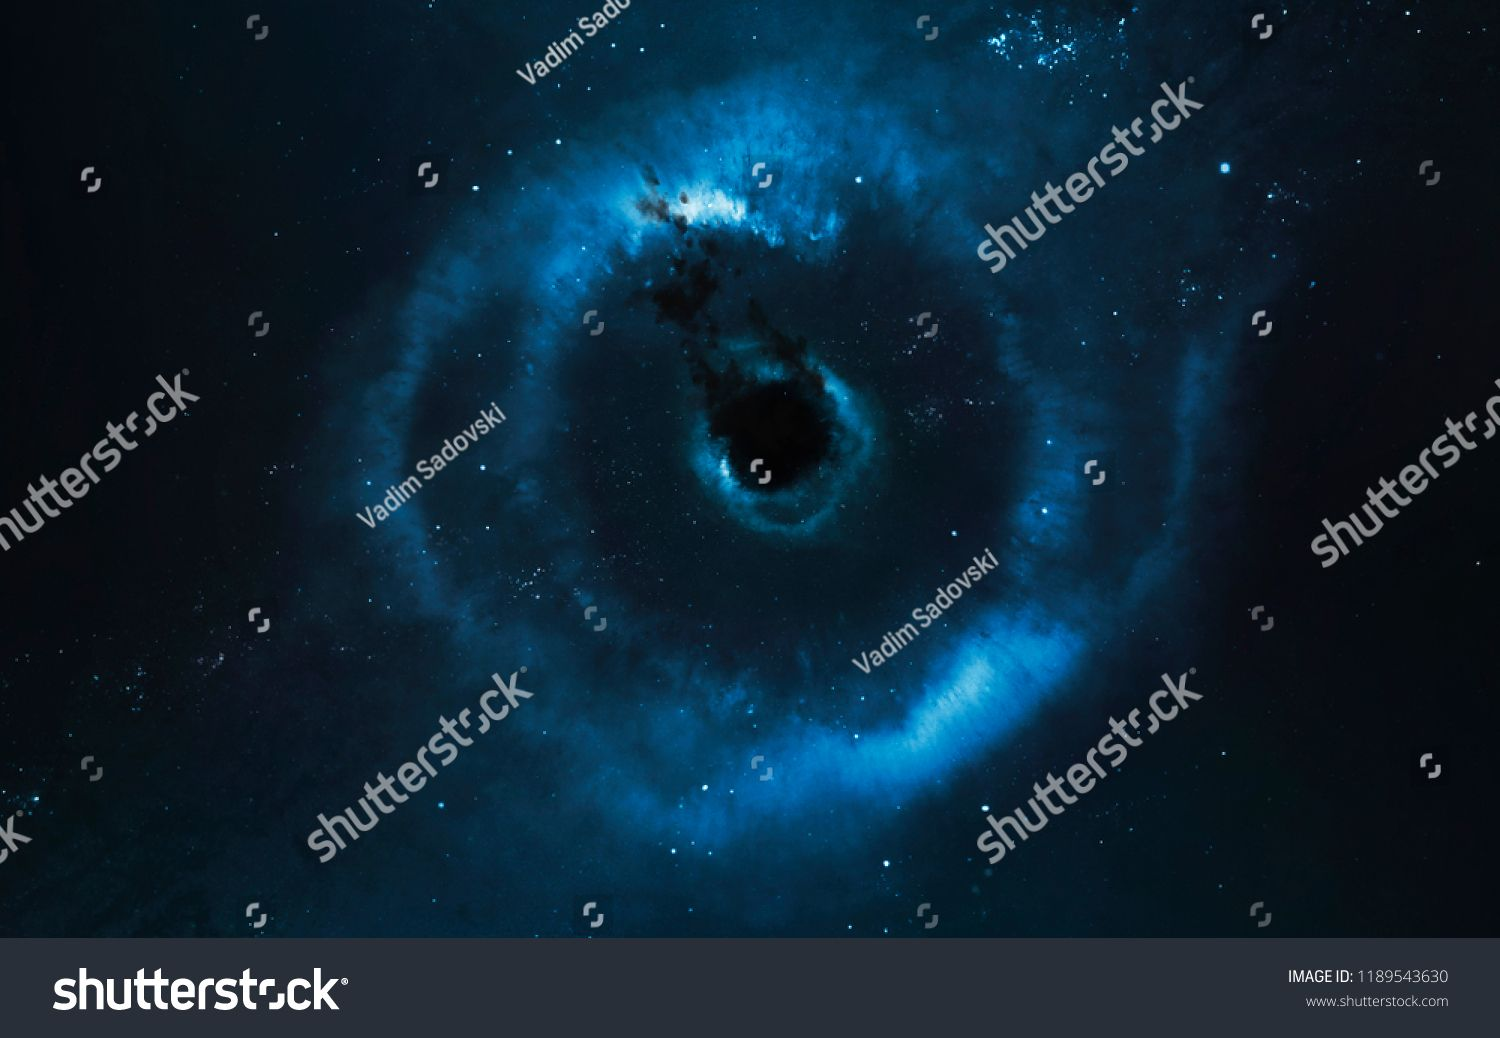 Black Hole Wormhole Science Fiction Art Elements Of This Image